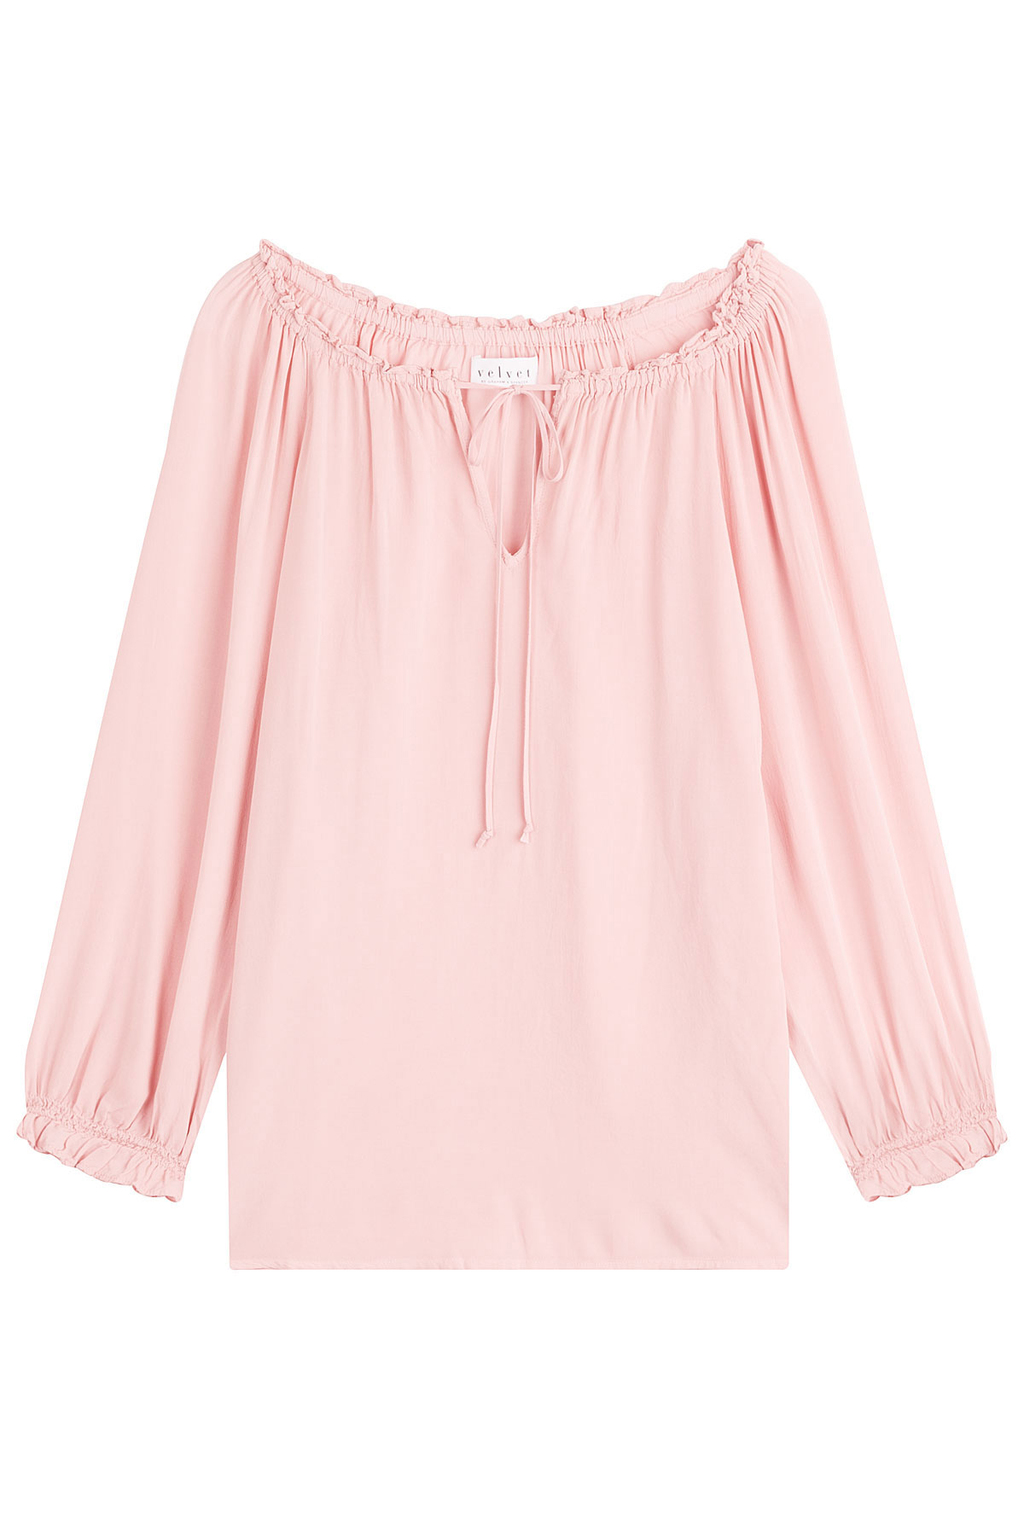 Ruched Top - pattern: plain; bust detail: subtle bust detail; predominant colour: blush; occasions: casual, creative work; length: standard; style: top; neckline: peep hole neckline; fibres: viscose/rayon - 100%; fit: loose; sleeve length: 3/4 length; sleeve style: standard; pattern type: fabric; texture group: jersey - stretchy/drapey; season: s/s 2016; wardrobe: basic